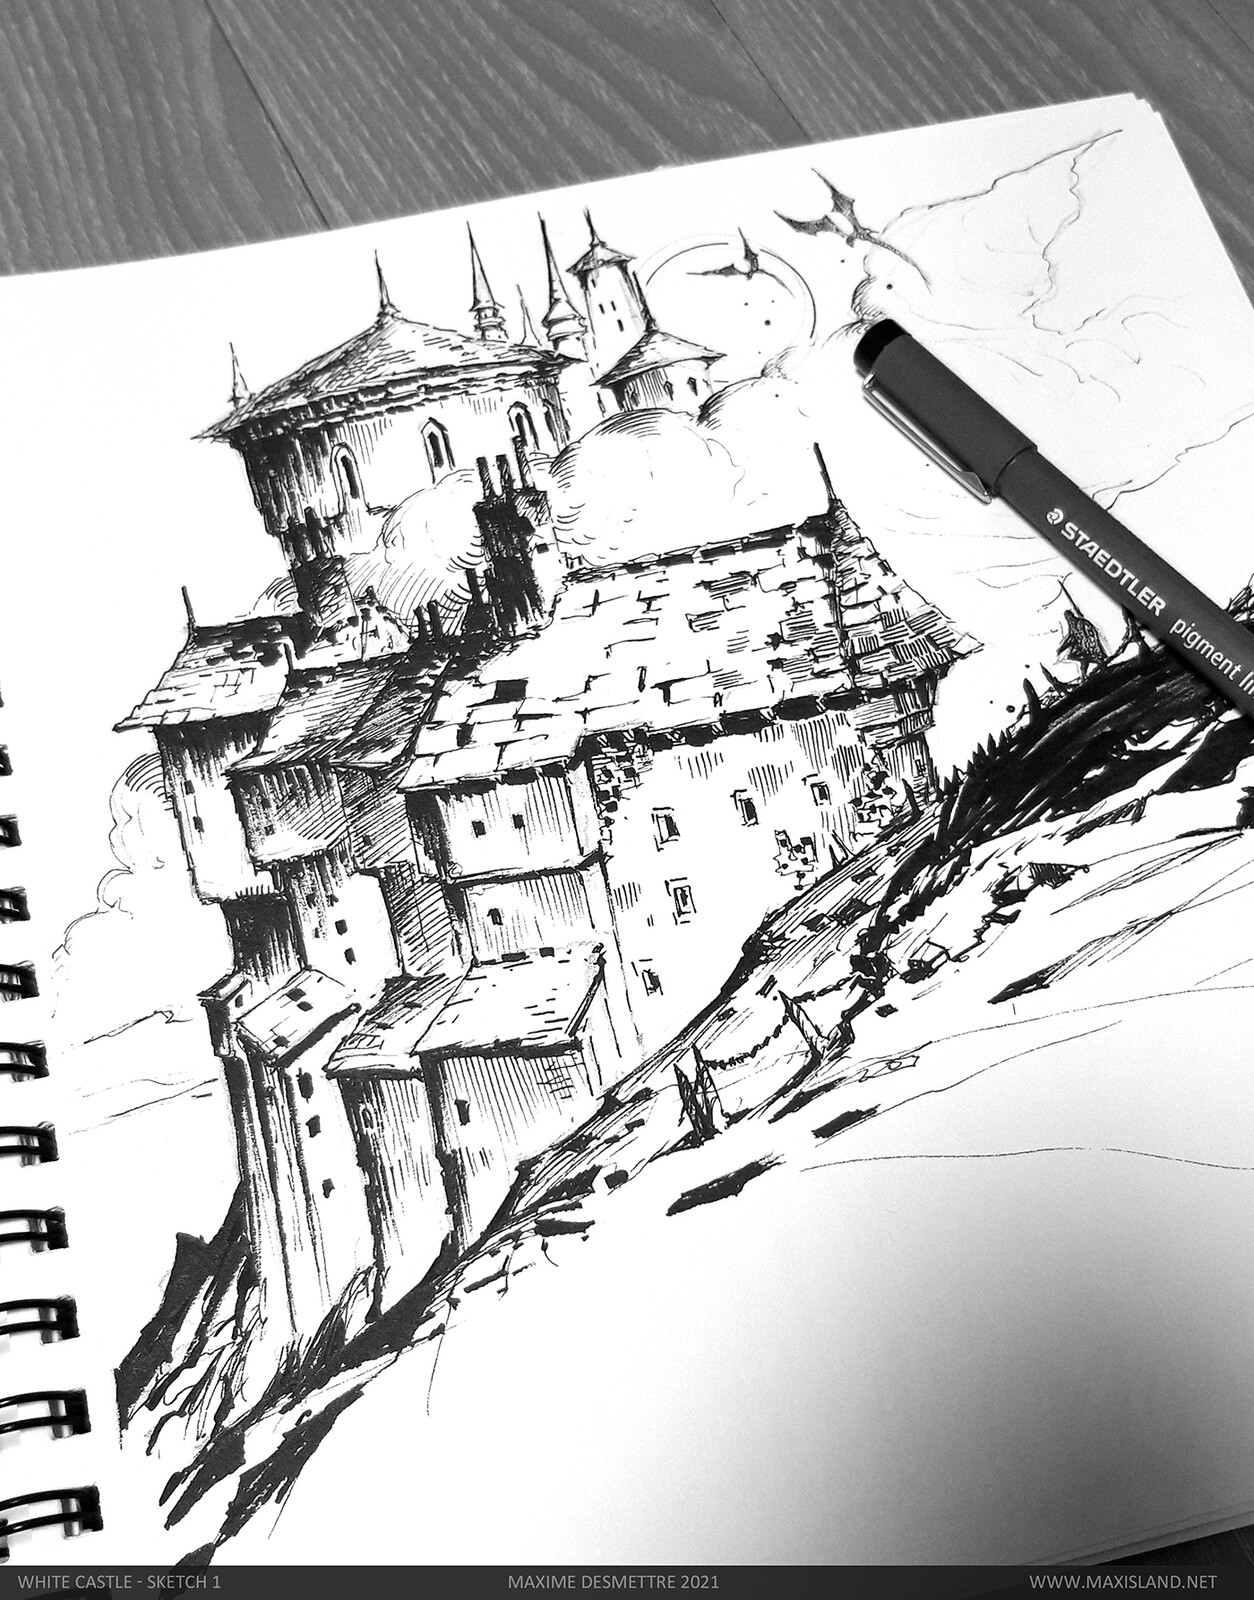 Sketch 1 (foreground) Pen on paper